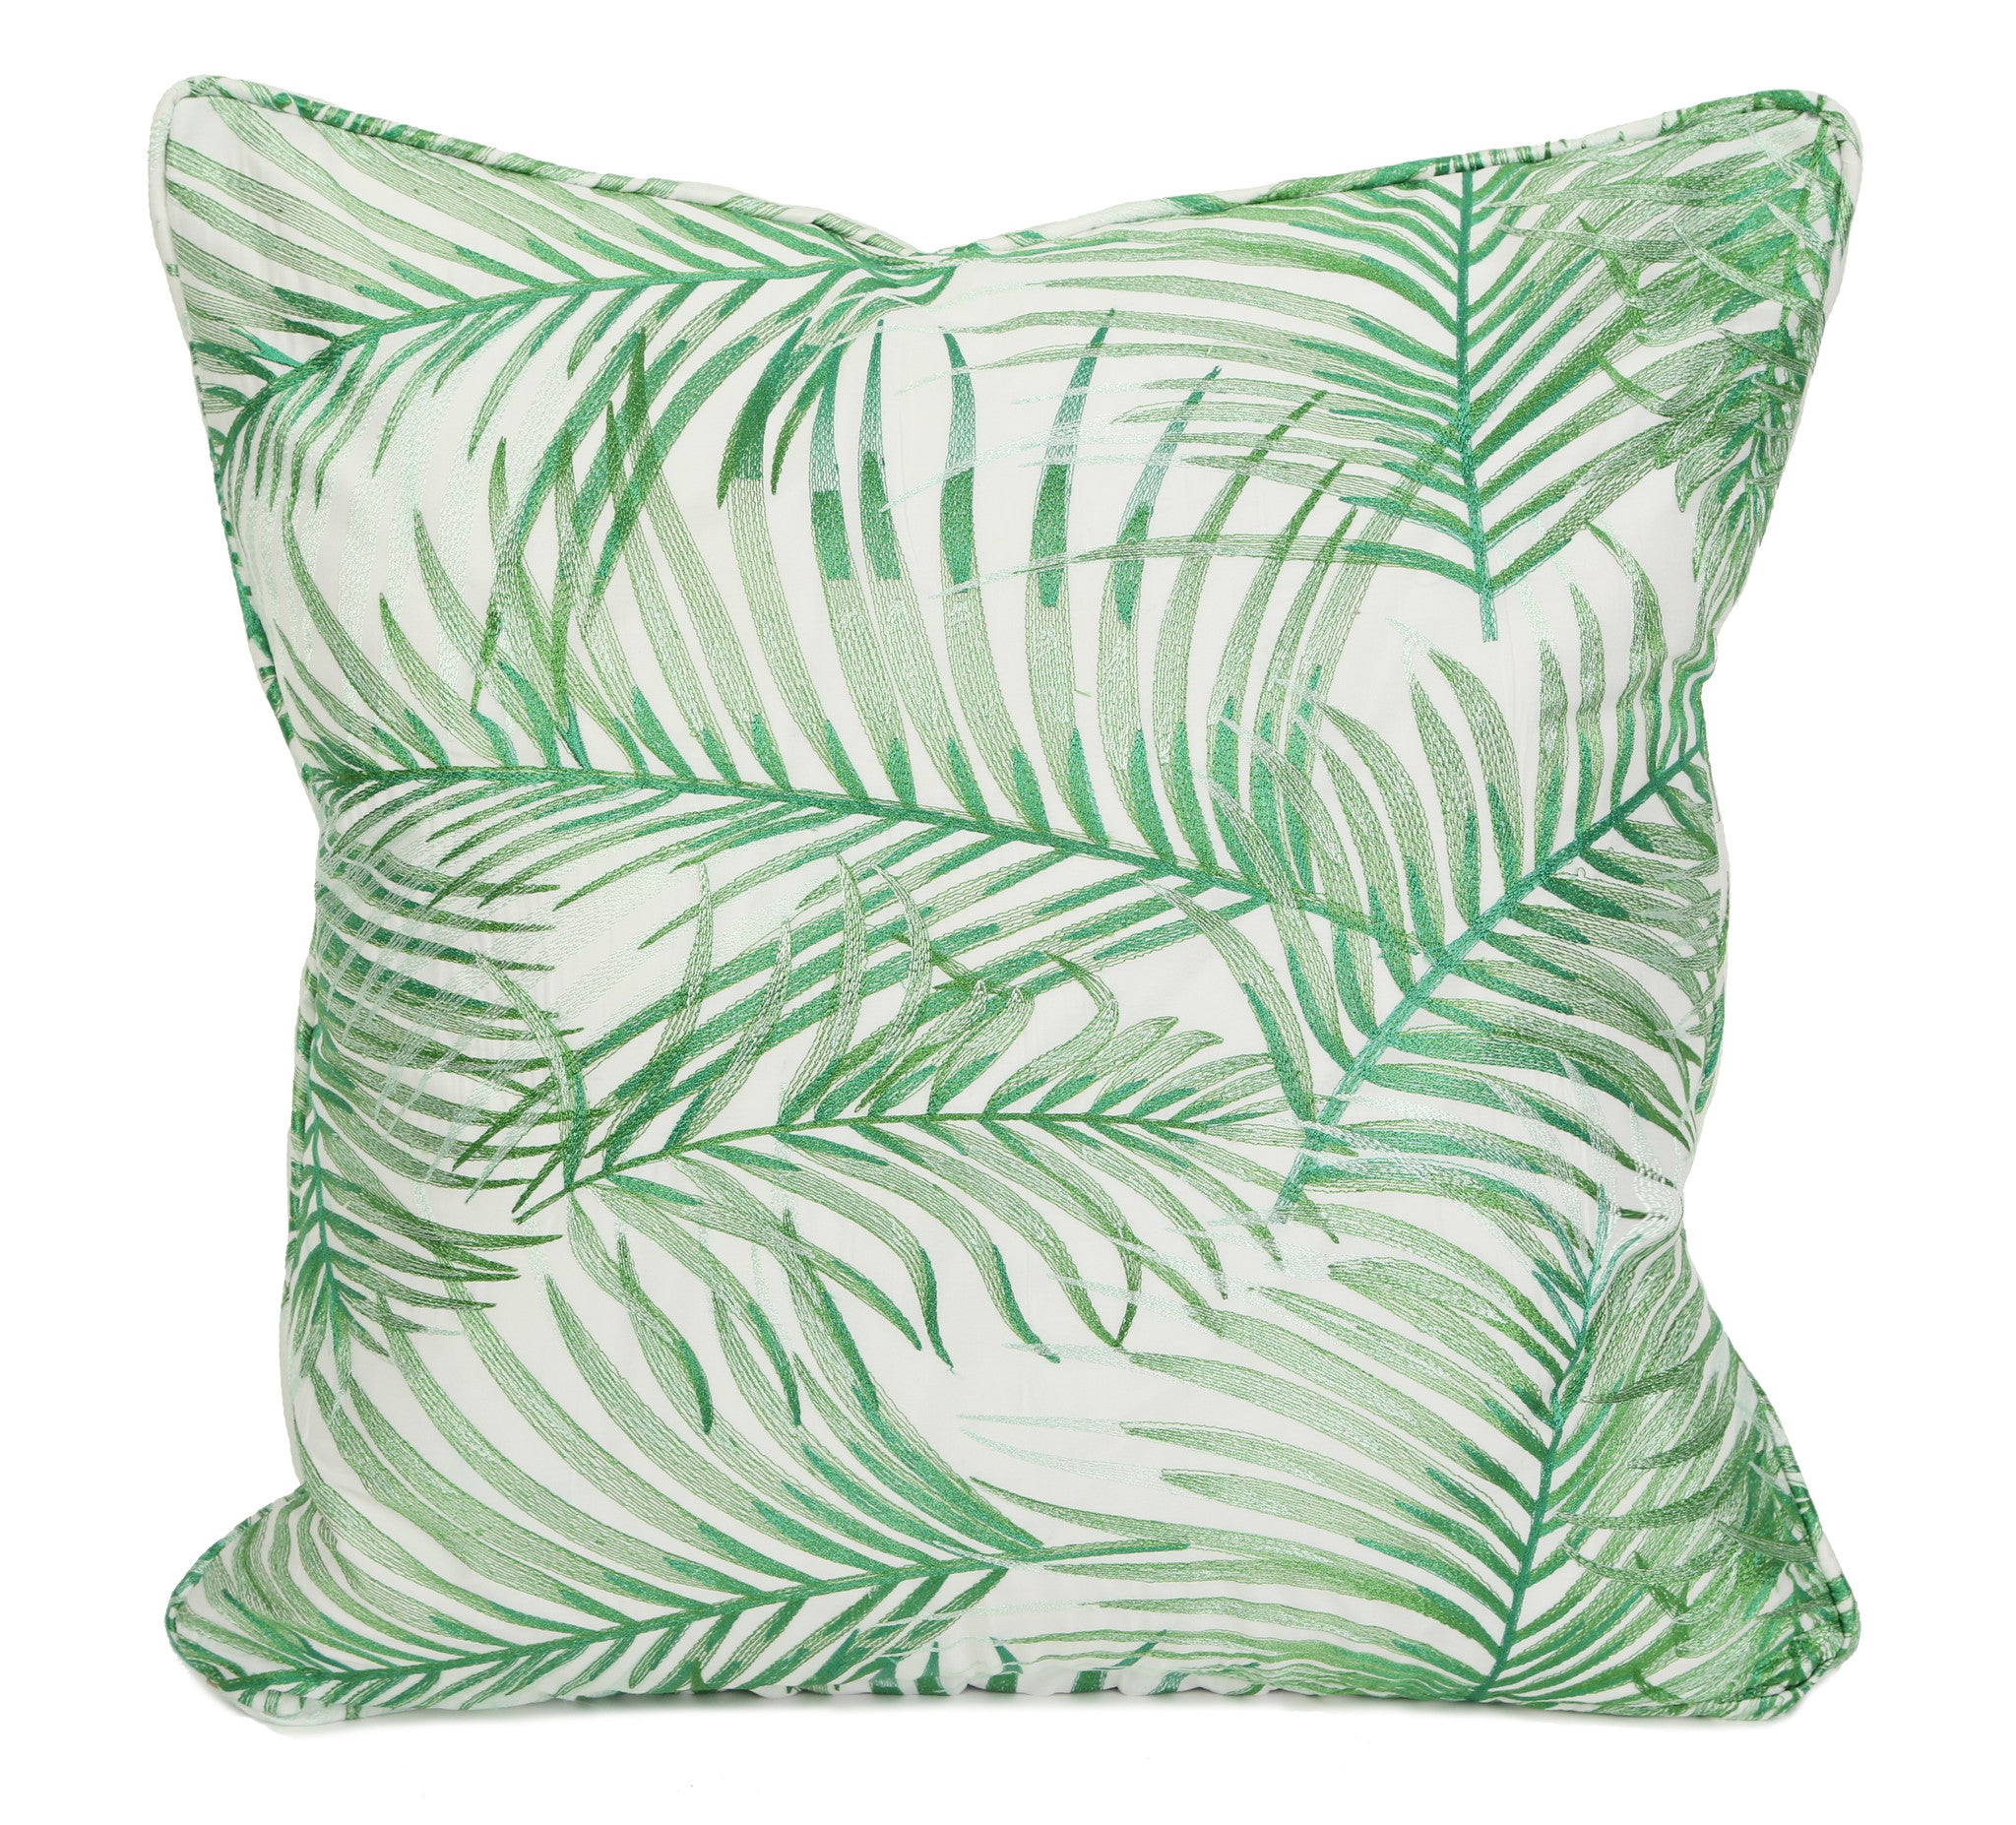 Robellini White Throw Pillow Cover - Carleton Varney